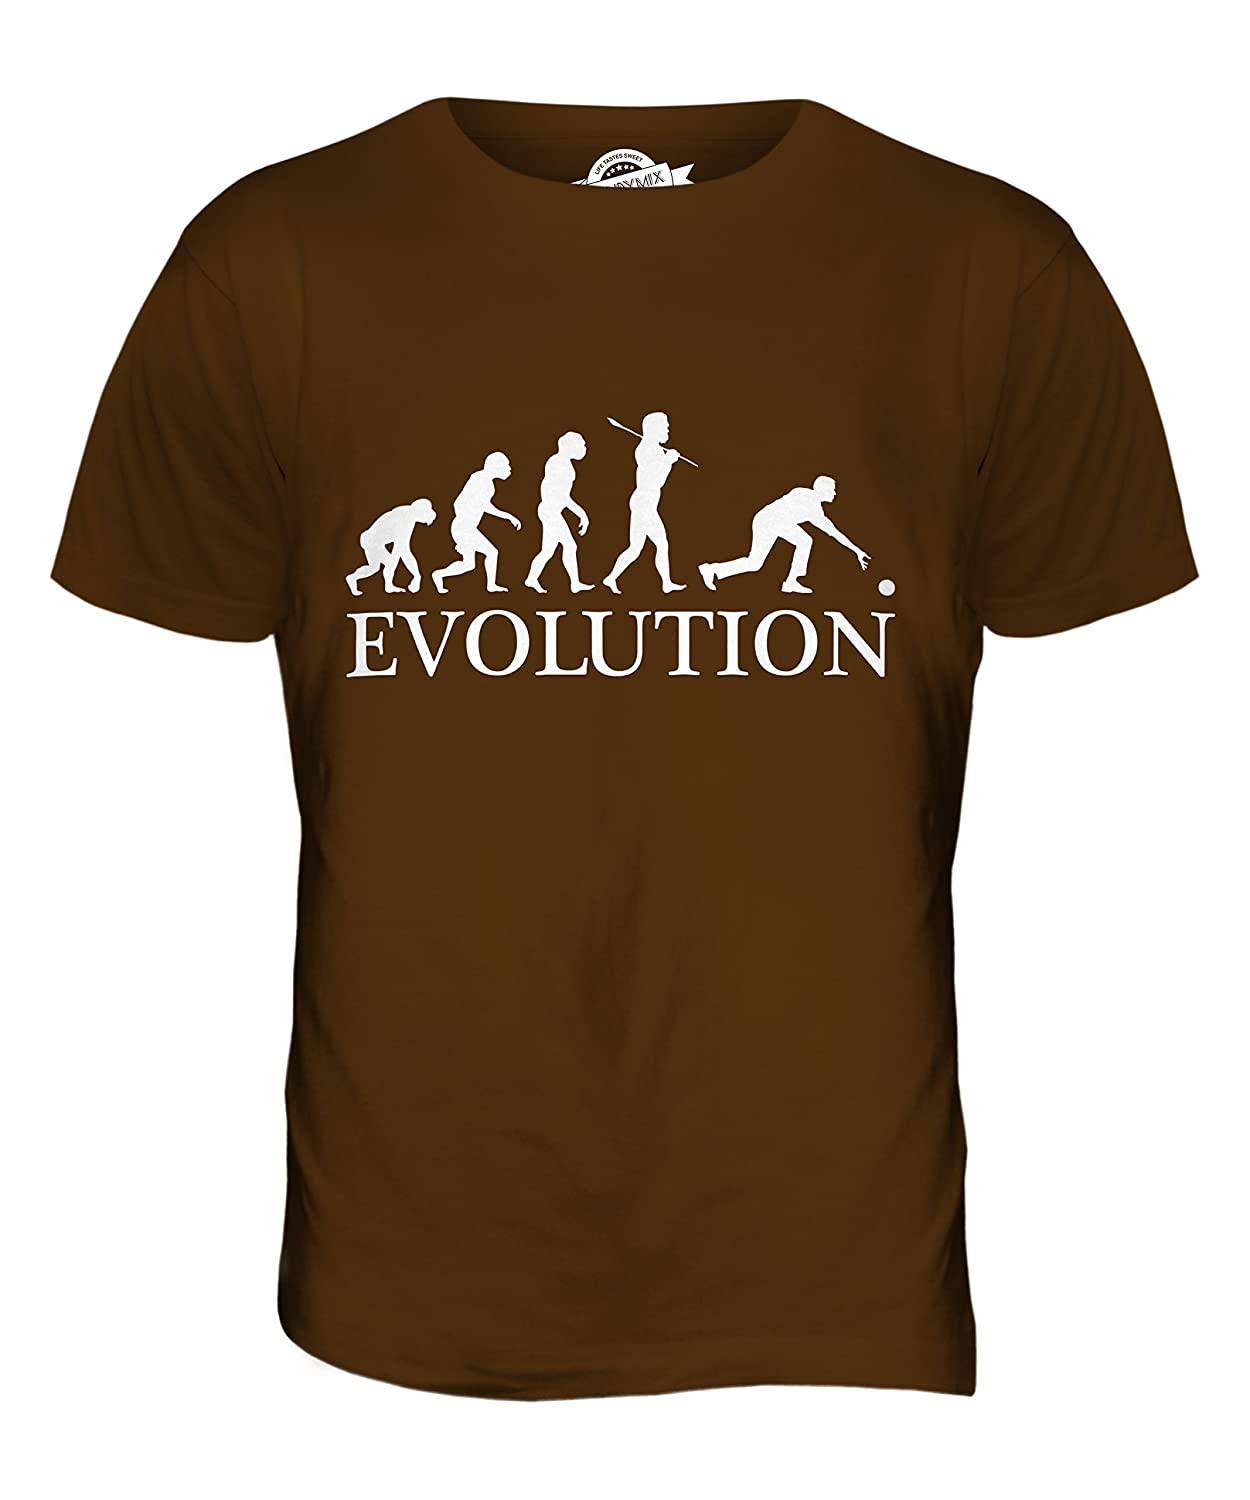 4d9544508 Candymix - Bowls Evolution Of Man - Mens T Shirt Top T-Shirt: Amazon.co.uk:  Clothing